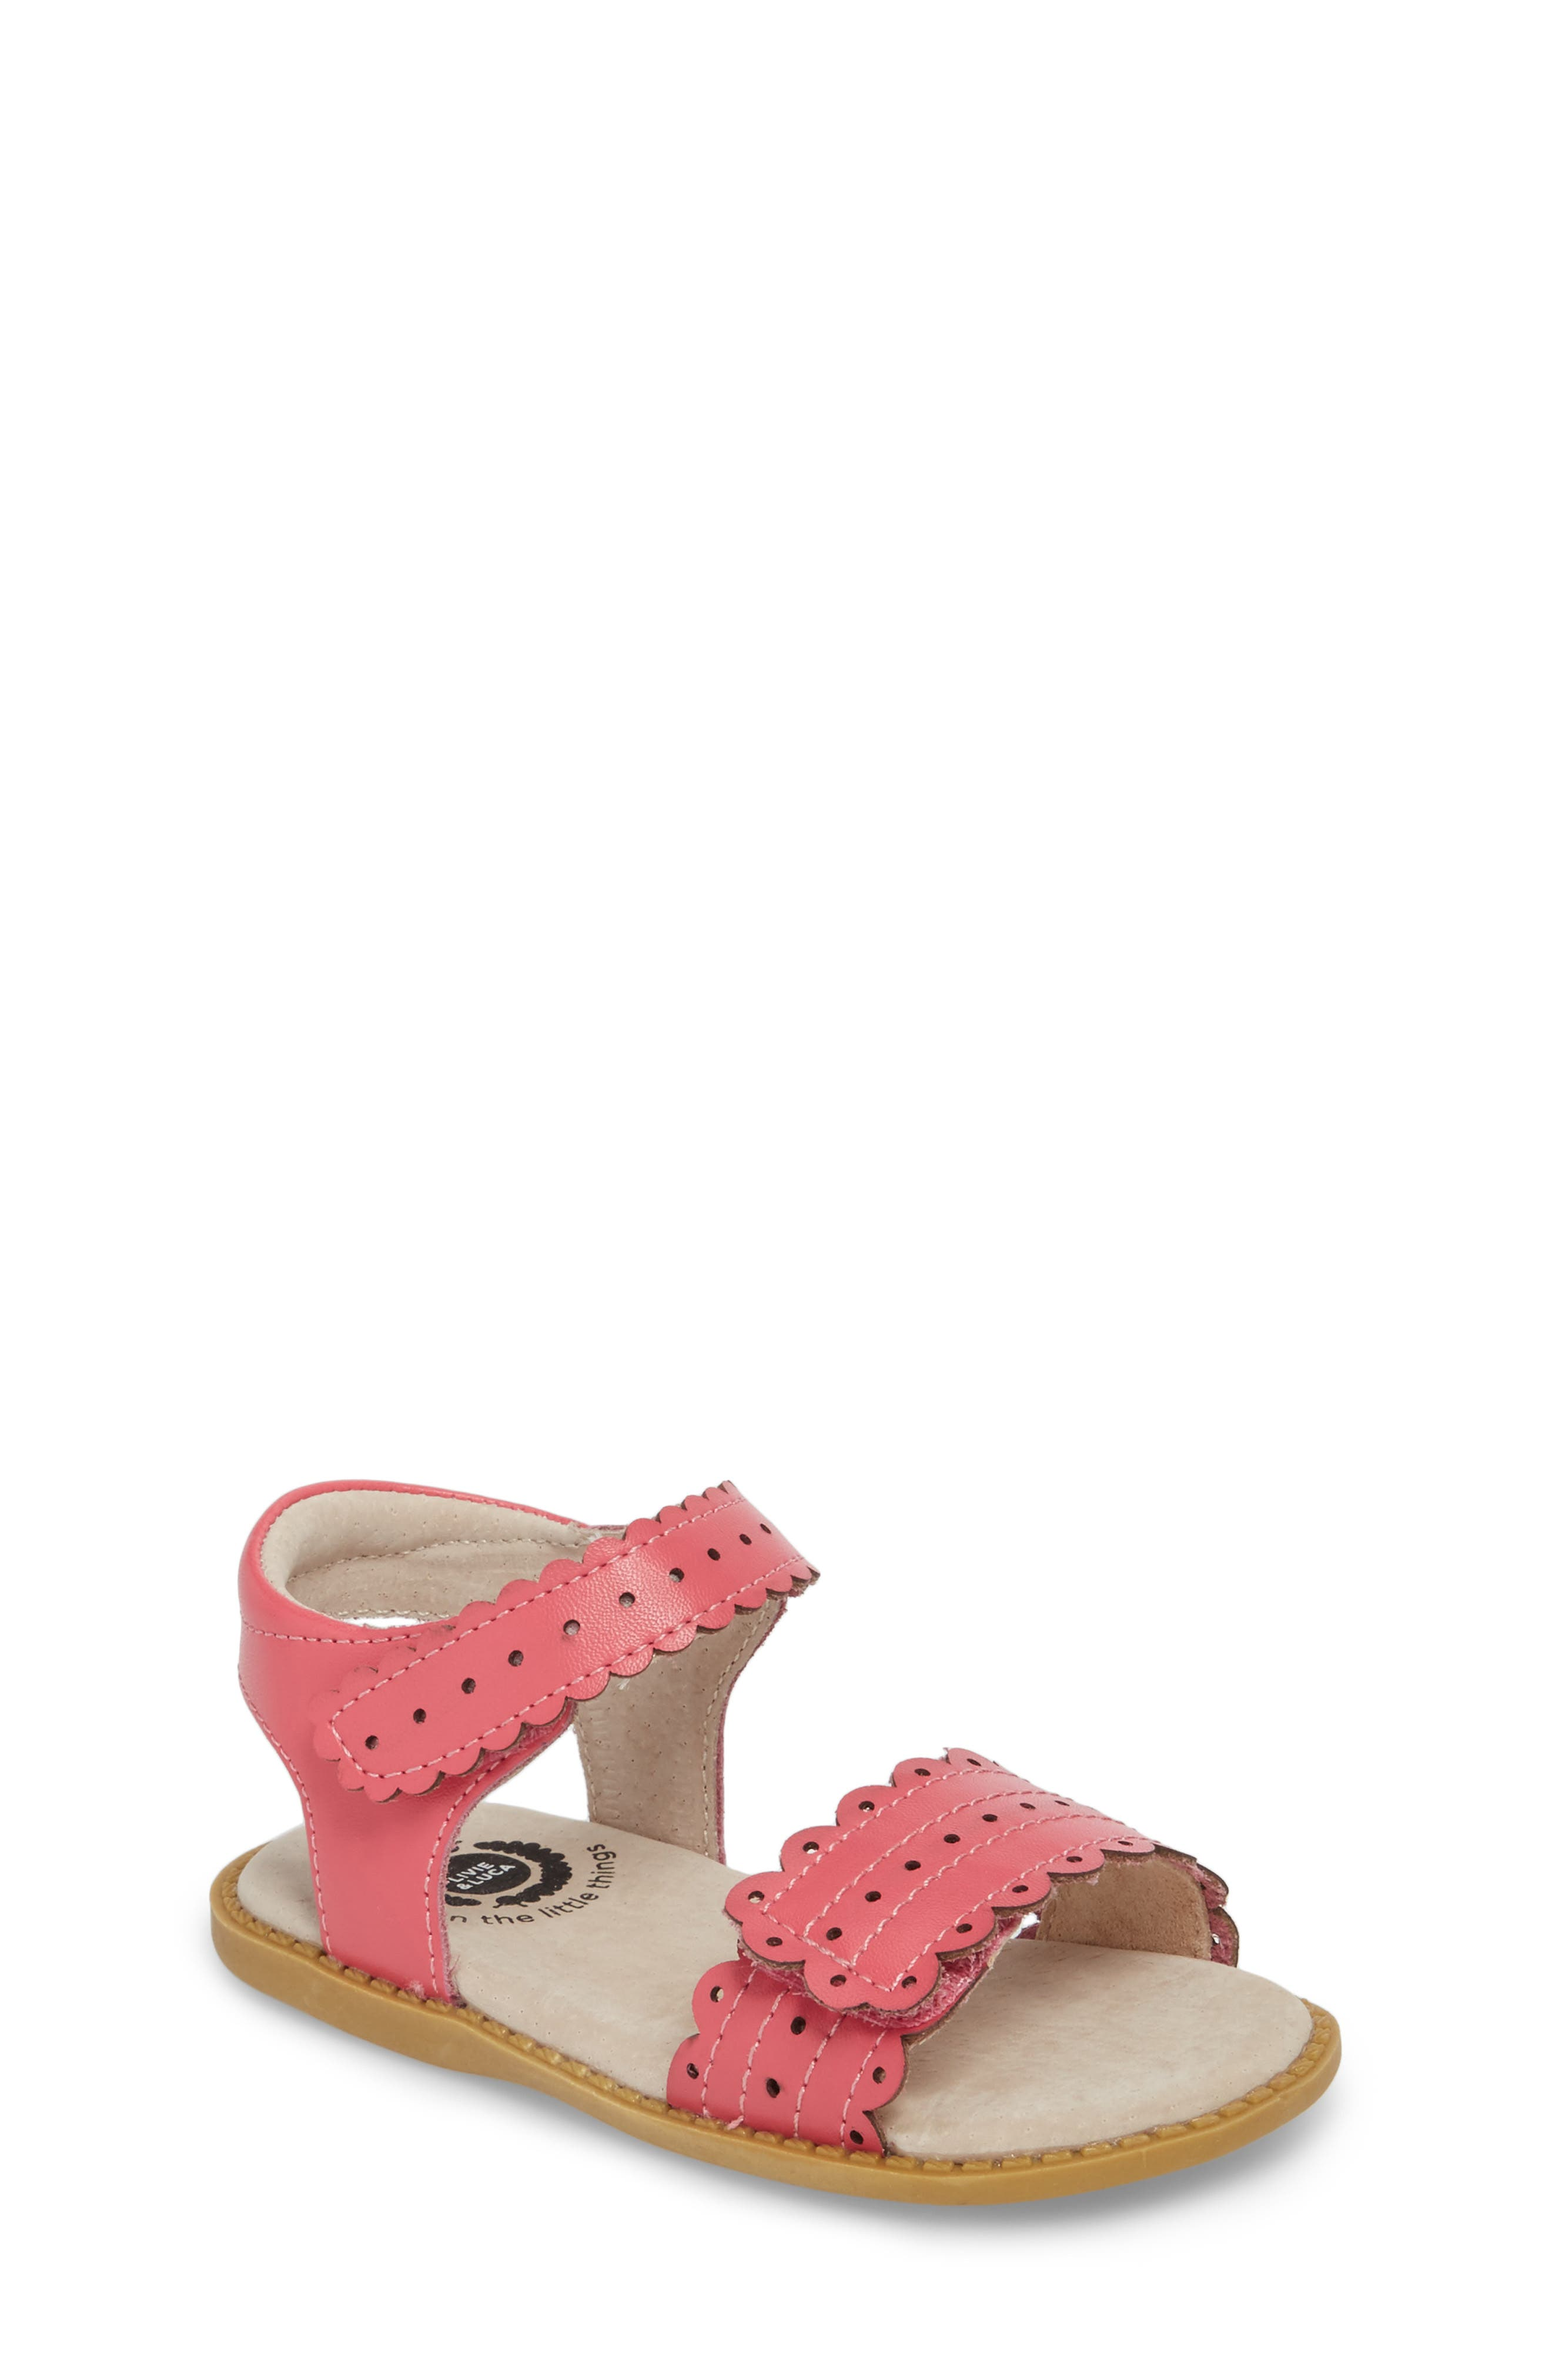 Posey Sandal,                         Main,                         color, Rosy Pink